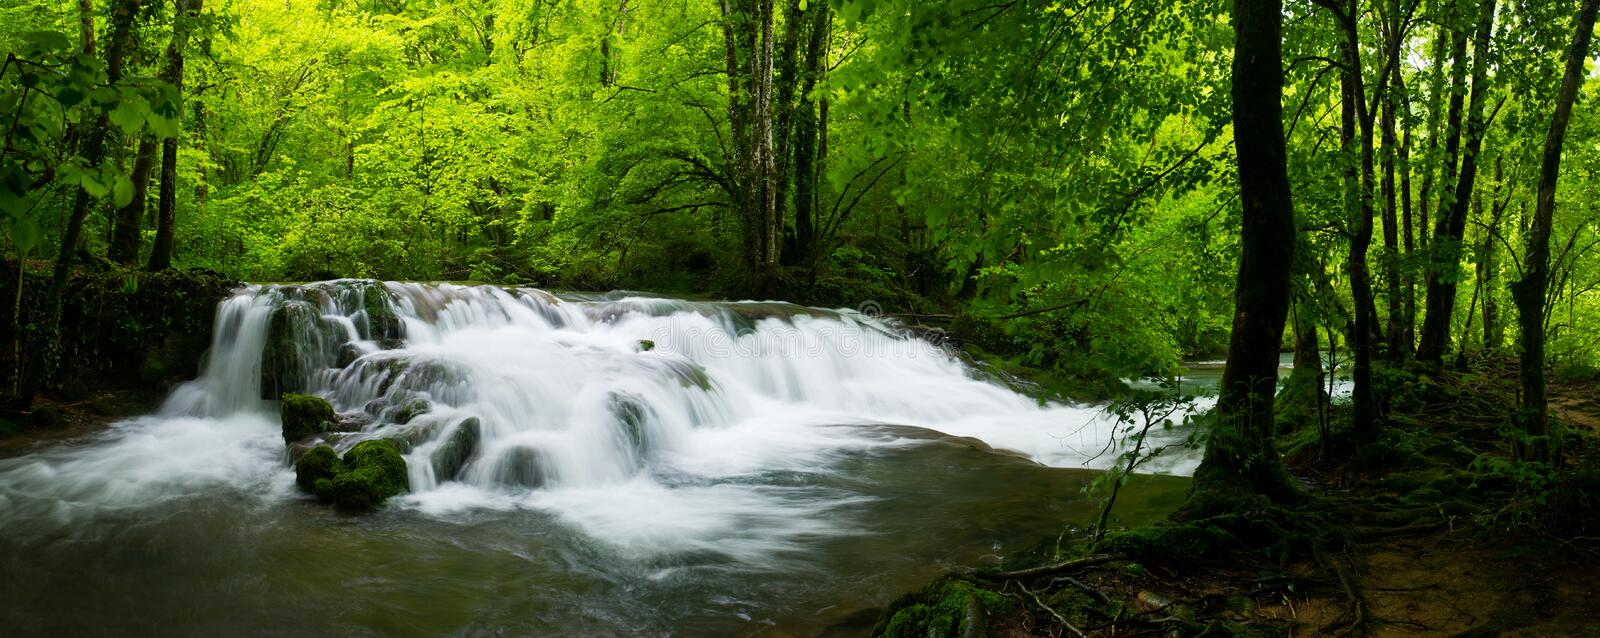 Panoramic view of the beautiful wild brook in jungle-like forest. Panoramic view of the beautiful wild brook in jungle-like green forest stock images